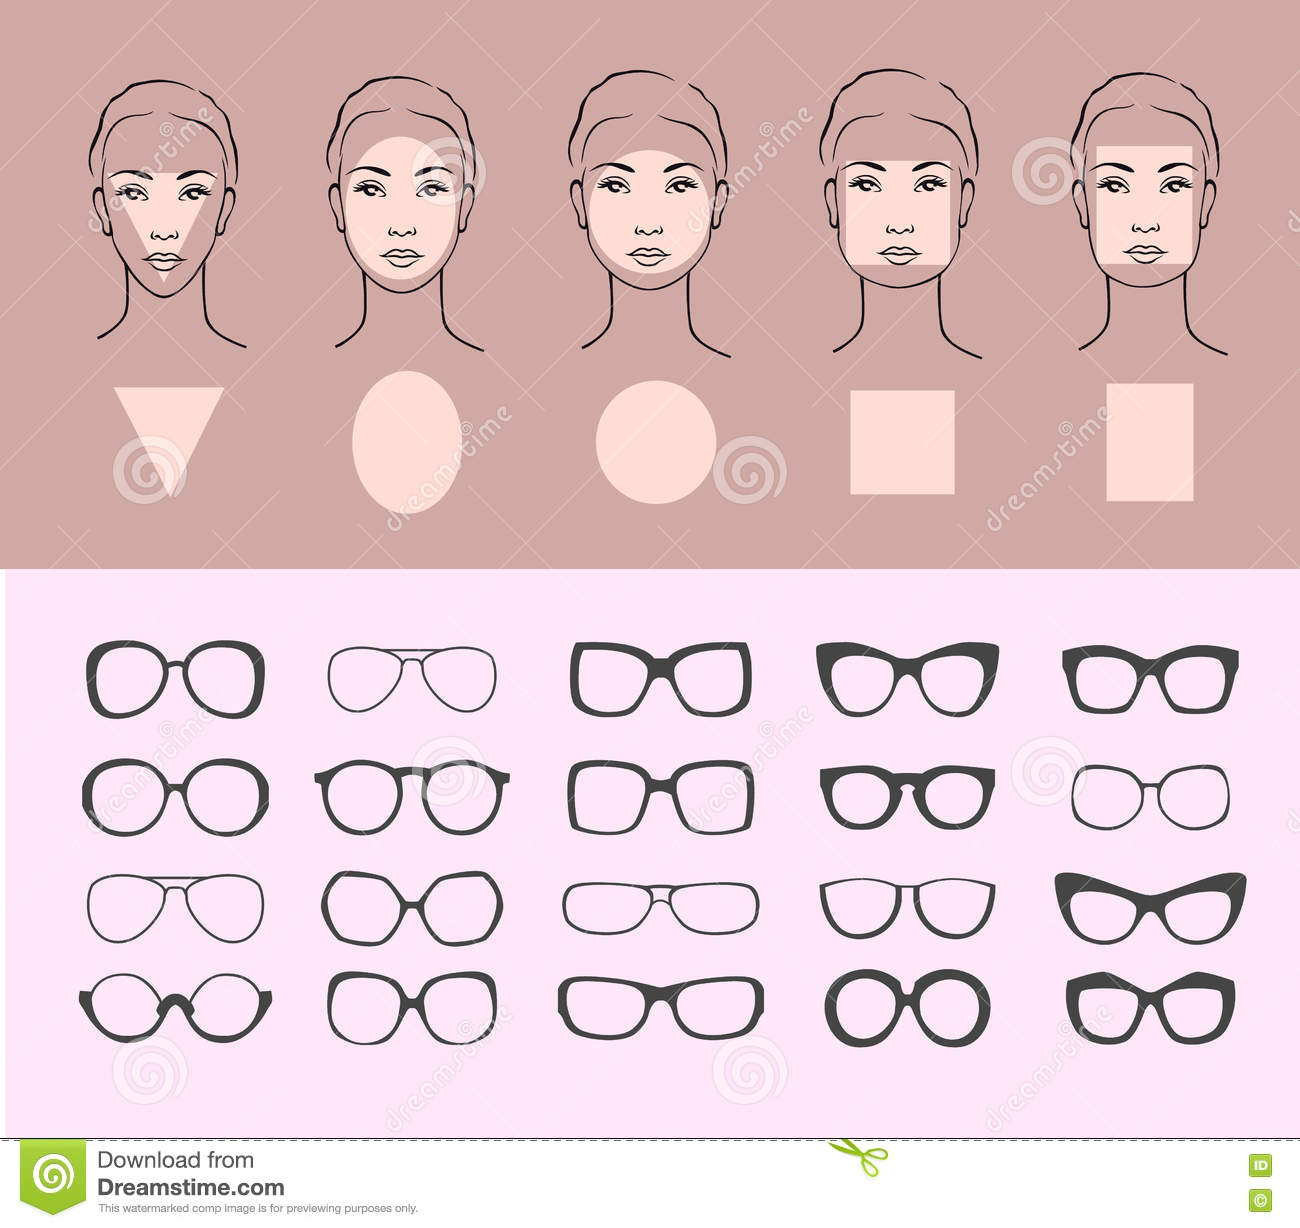 woman face shape types cartoon vector. Black Bedroom Furniture Sets. Home Design Ideas